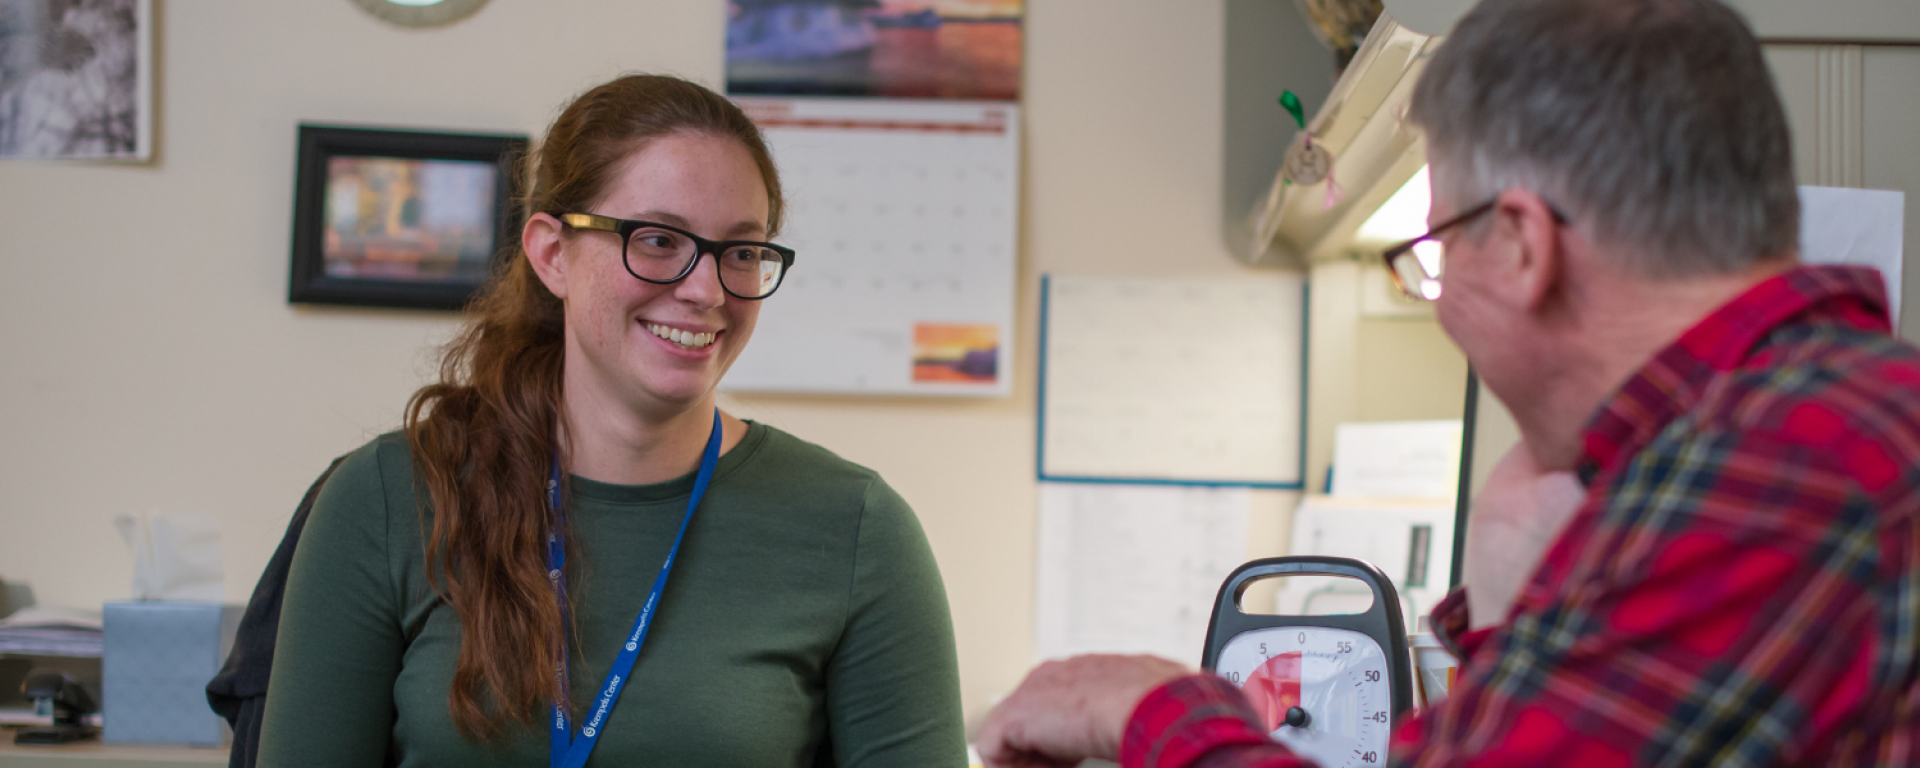 Social work student working with client at Krempels Center in Portsmouth, NH